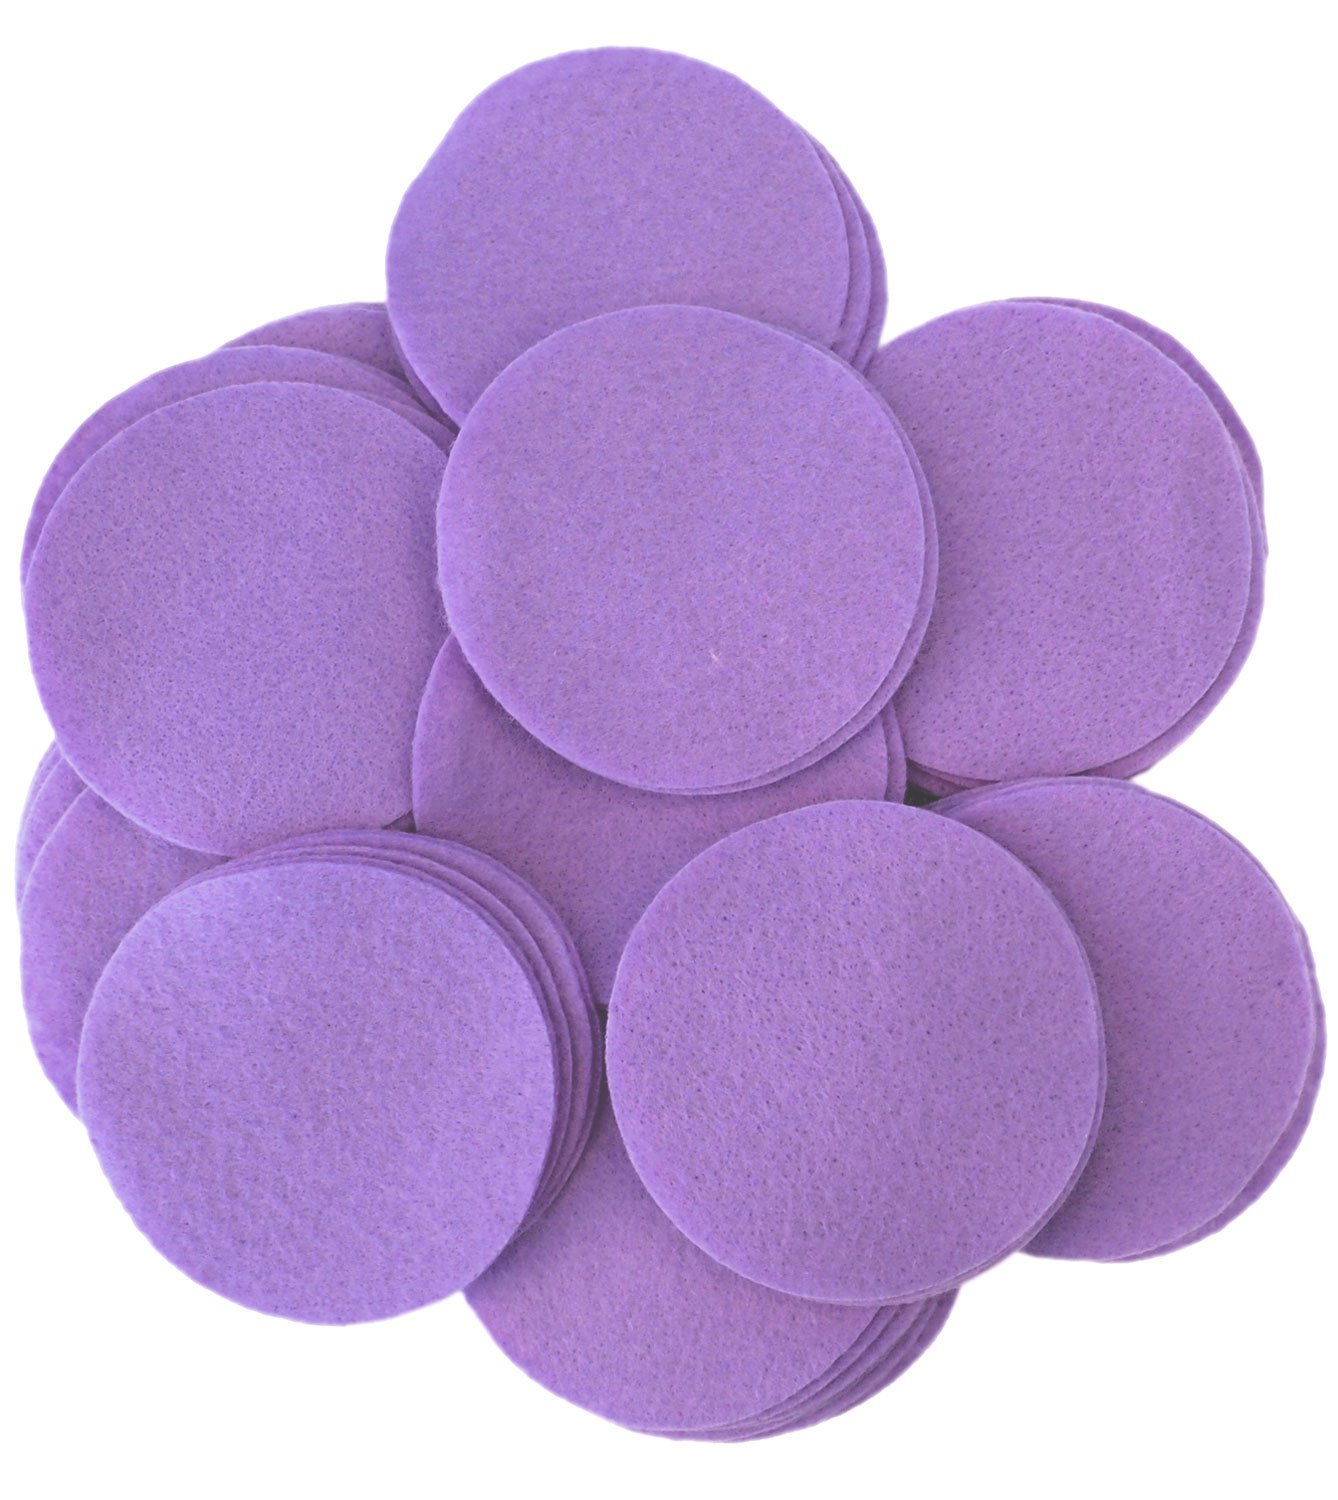 4 Inch - 19pc Playfully Ever After Charcoal Gray Craft Felt Circles